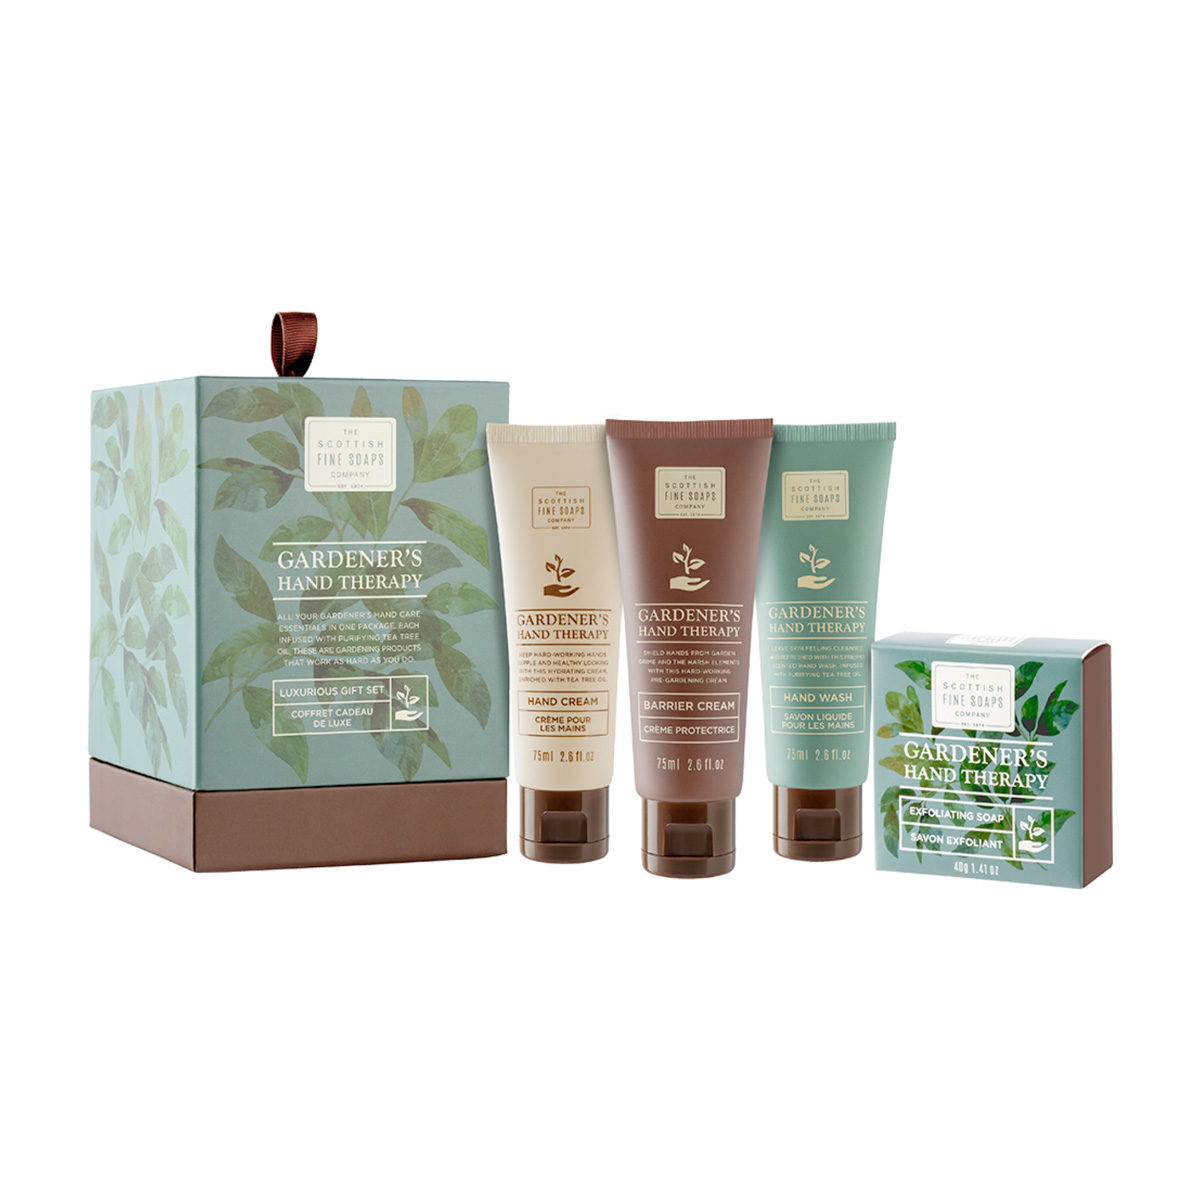 Gardener's Hand Therapy Luxurious Gift Set